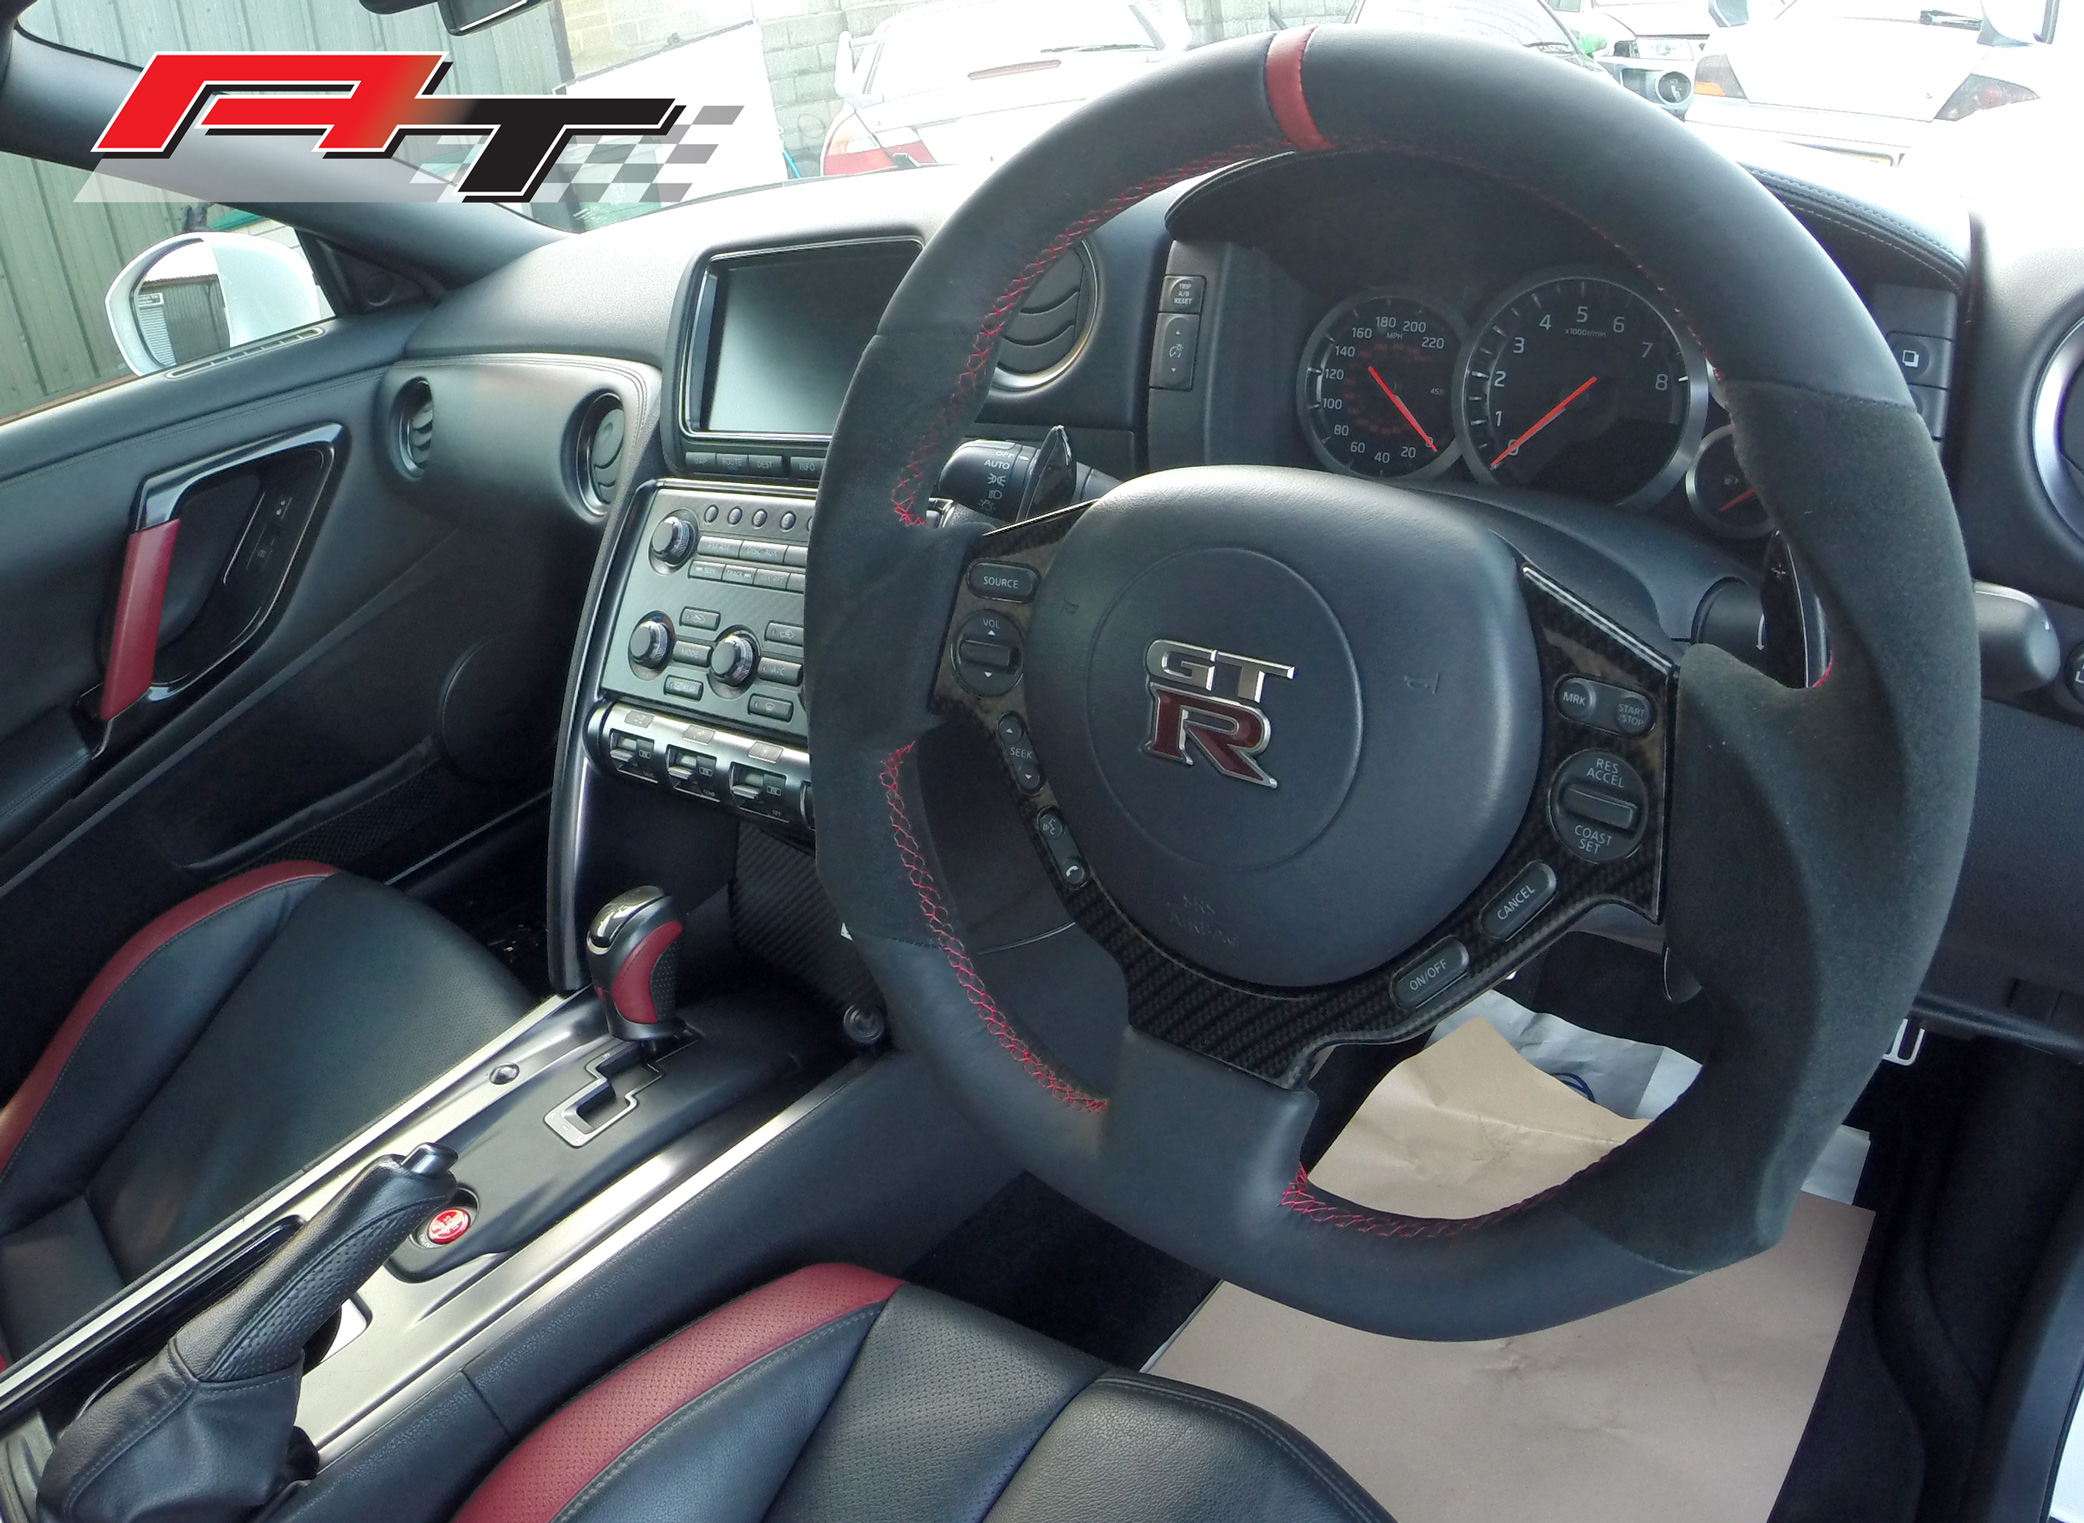 Nissan GTR Flat bottomed steering wheels